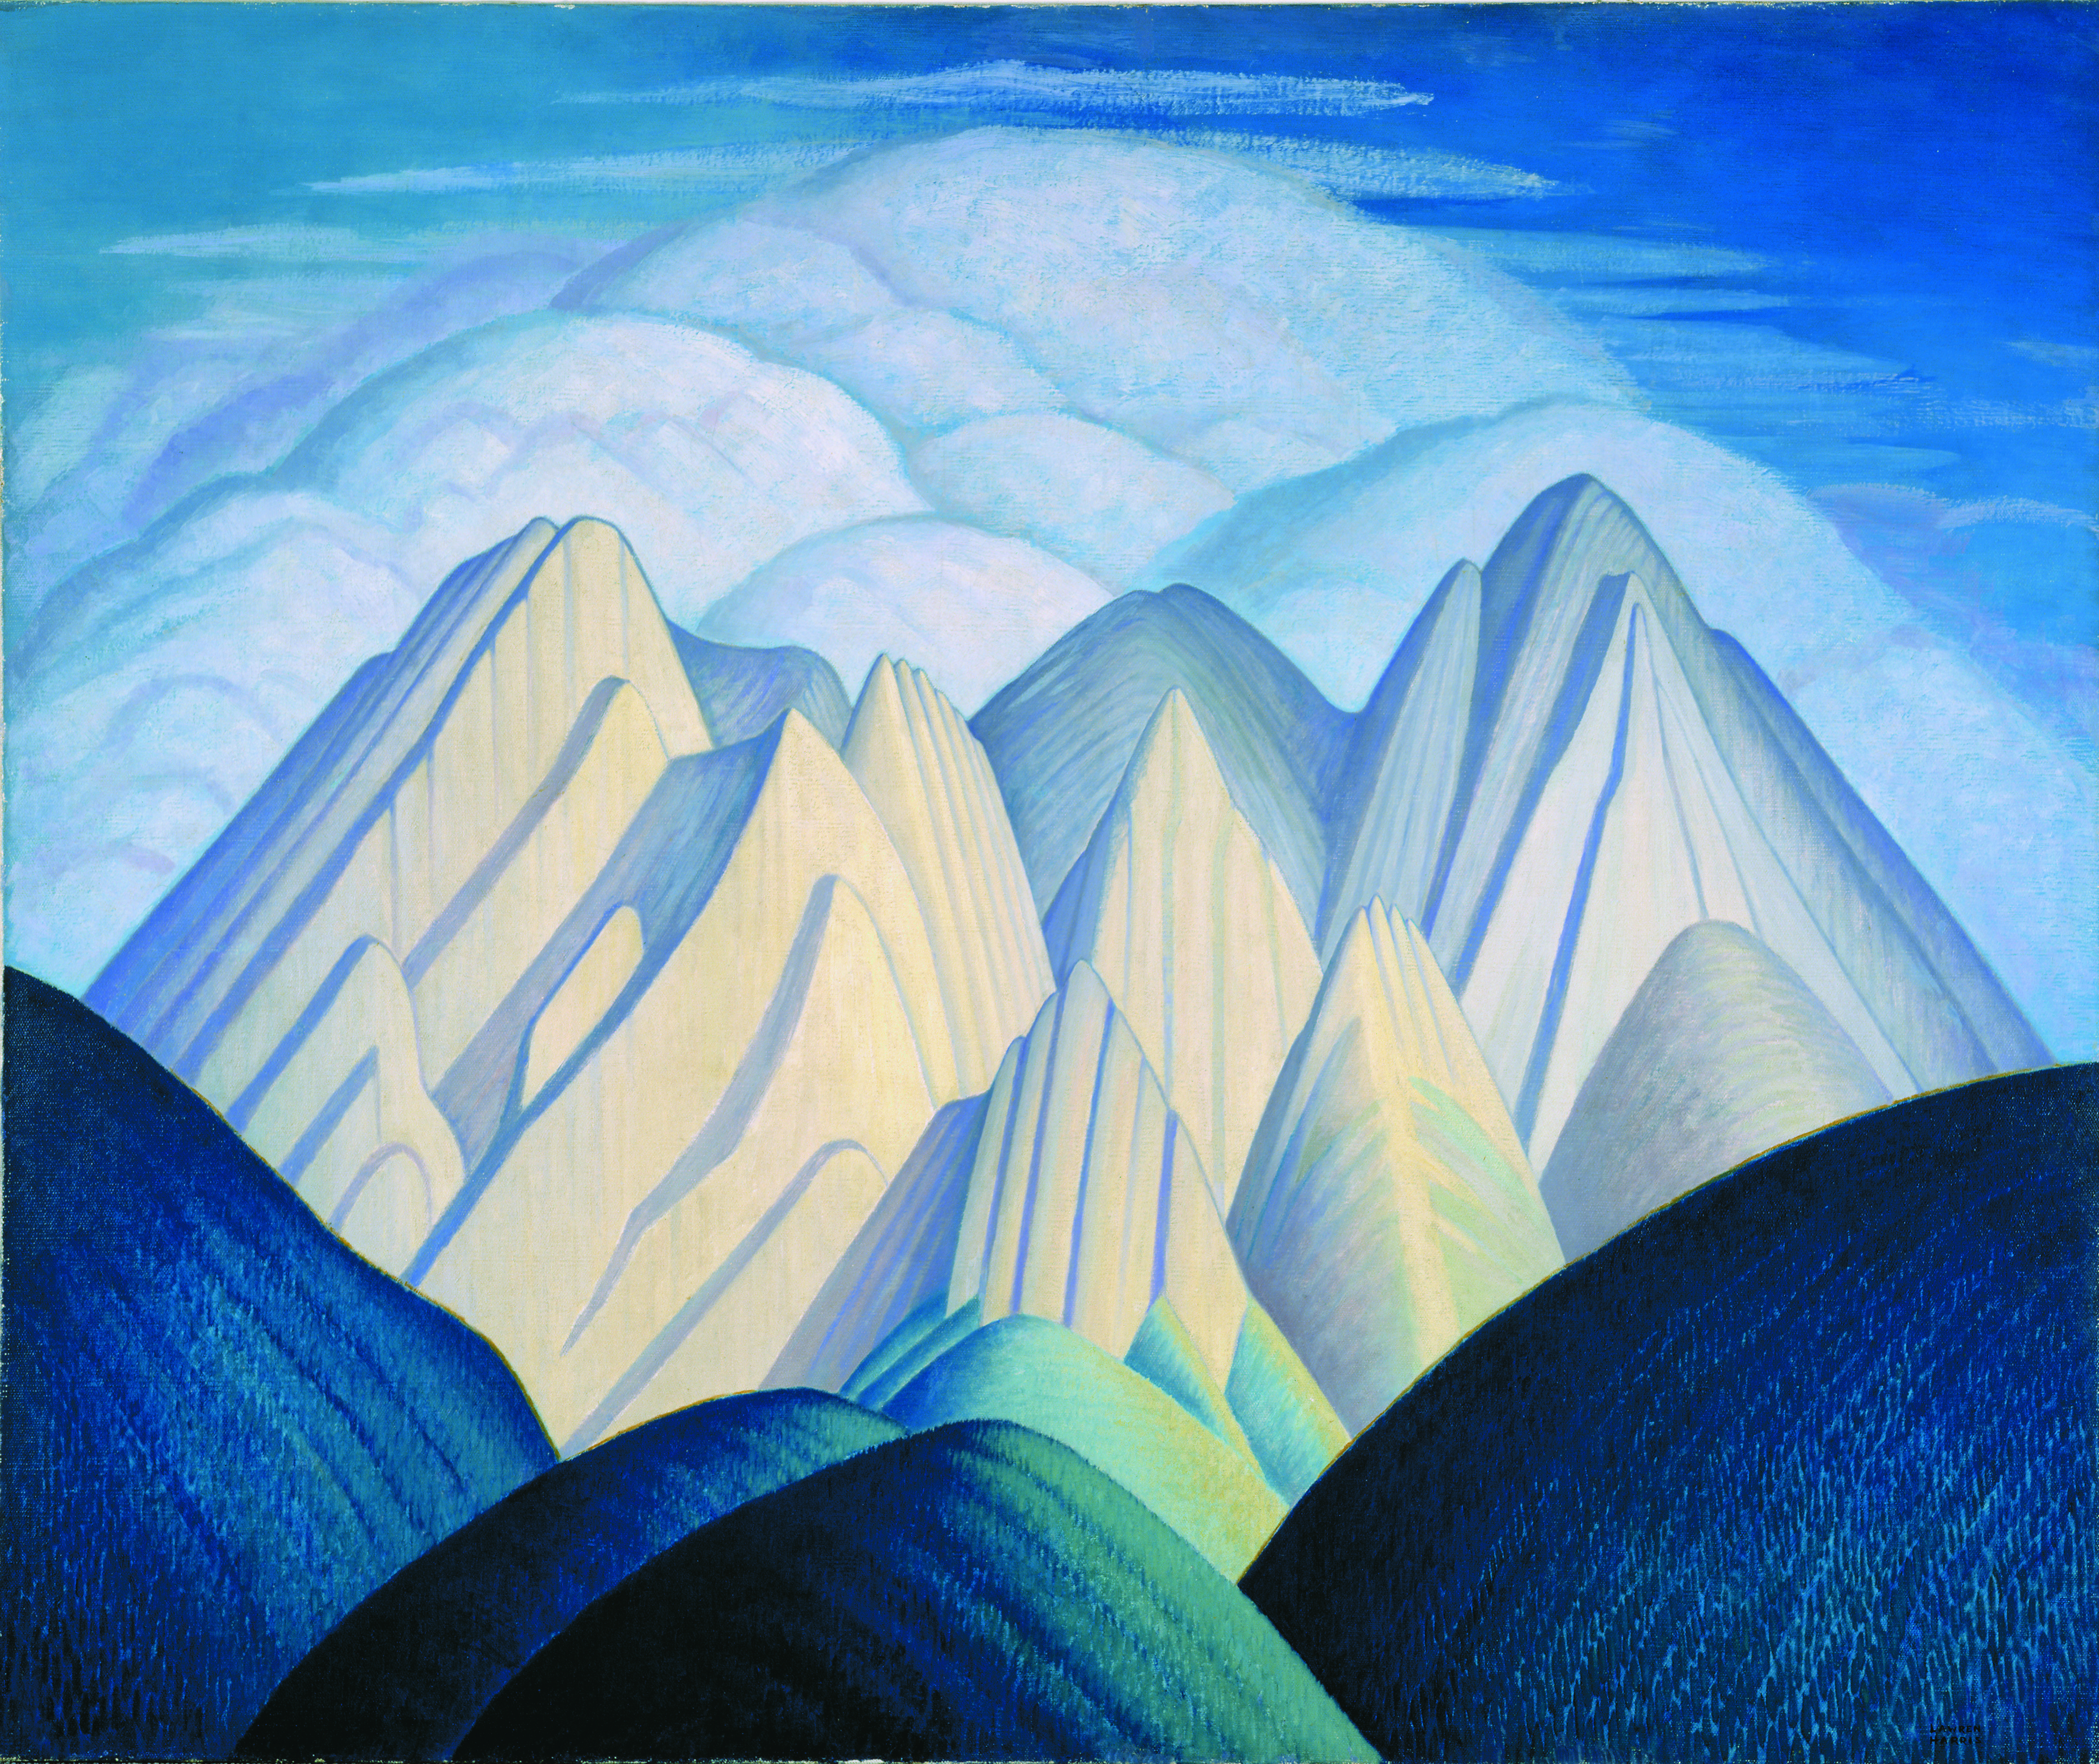 lawren harris the canadian artist The idea of north: the paintings of lawren harris is an exhibition of 73 harris paintings, co-curated by the comedian and art collector steve martin alongside the ago's andrew hunter and cynthia burlingham of the hammer museum in la it opened at the hammer last october and arrives at the ago this month.